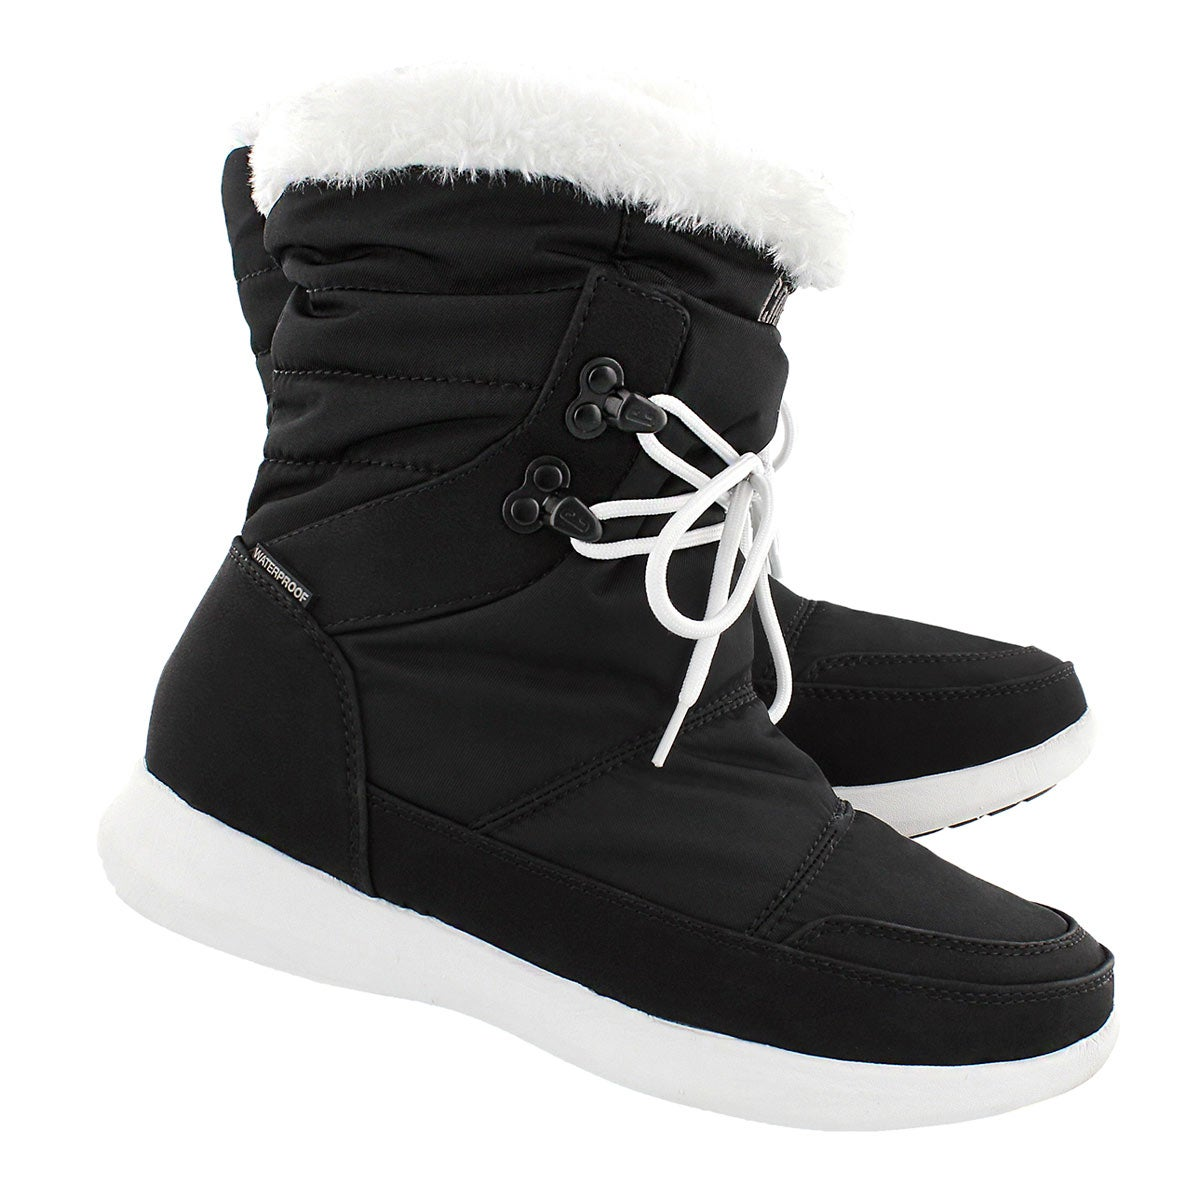 Lds Wonder blk wtpf pull on winter boot